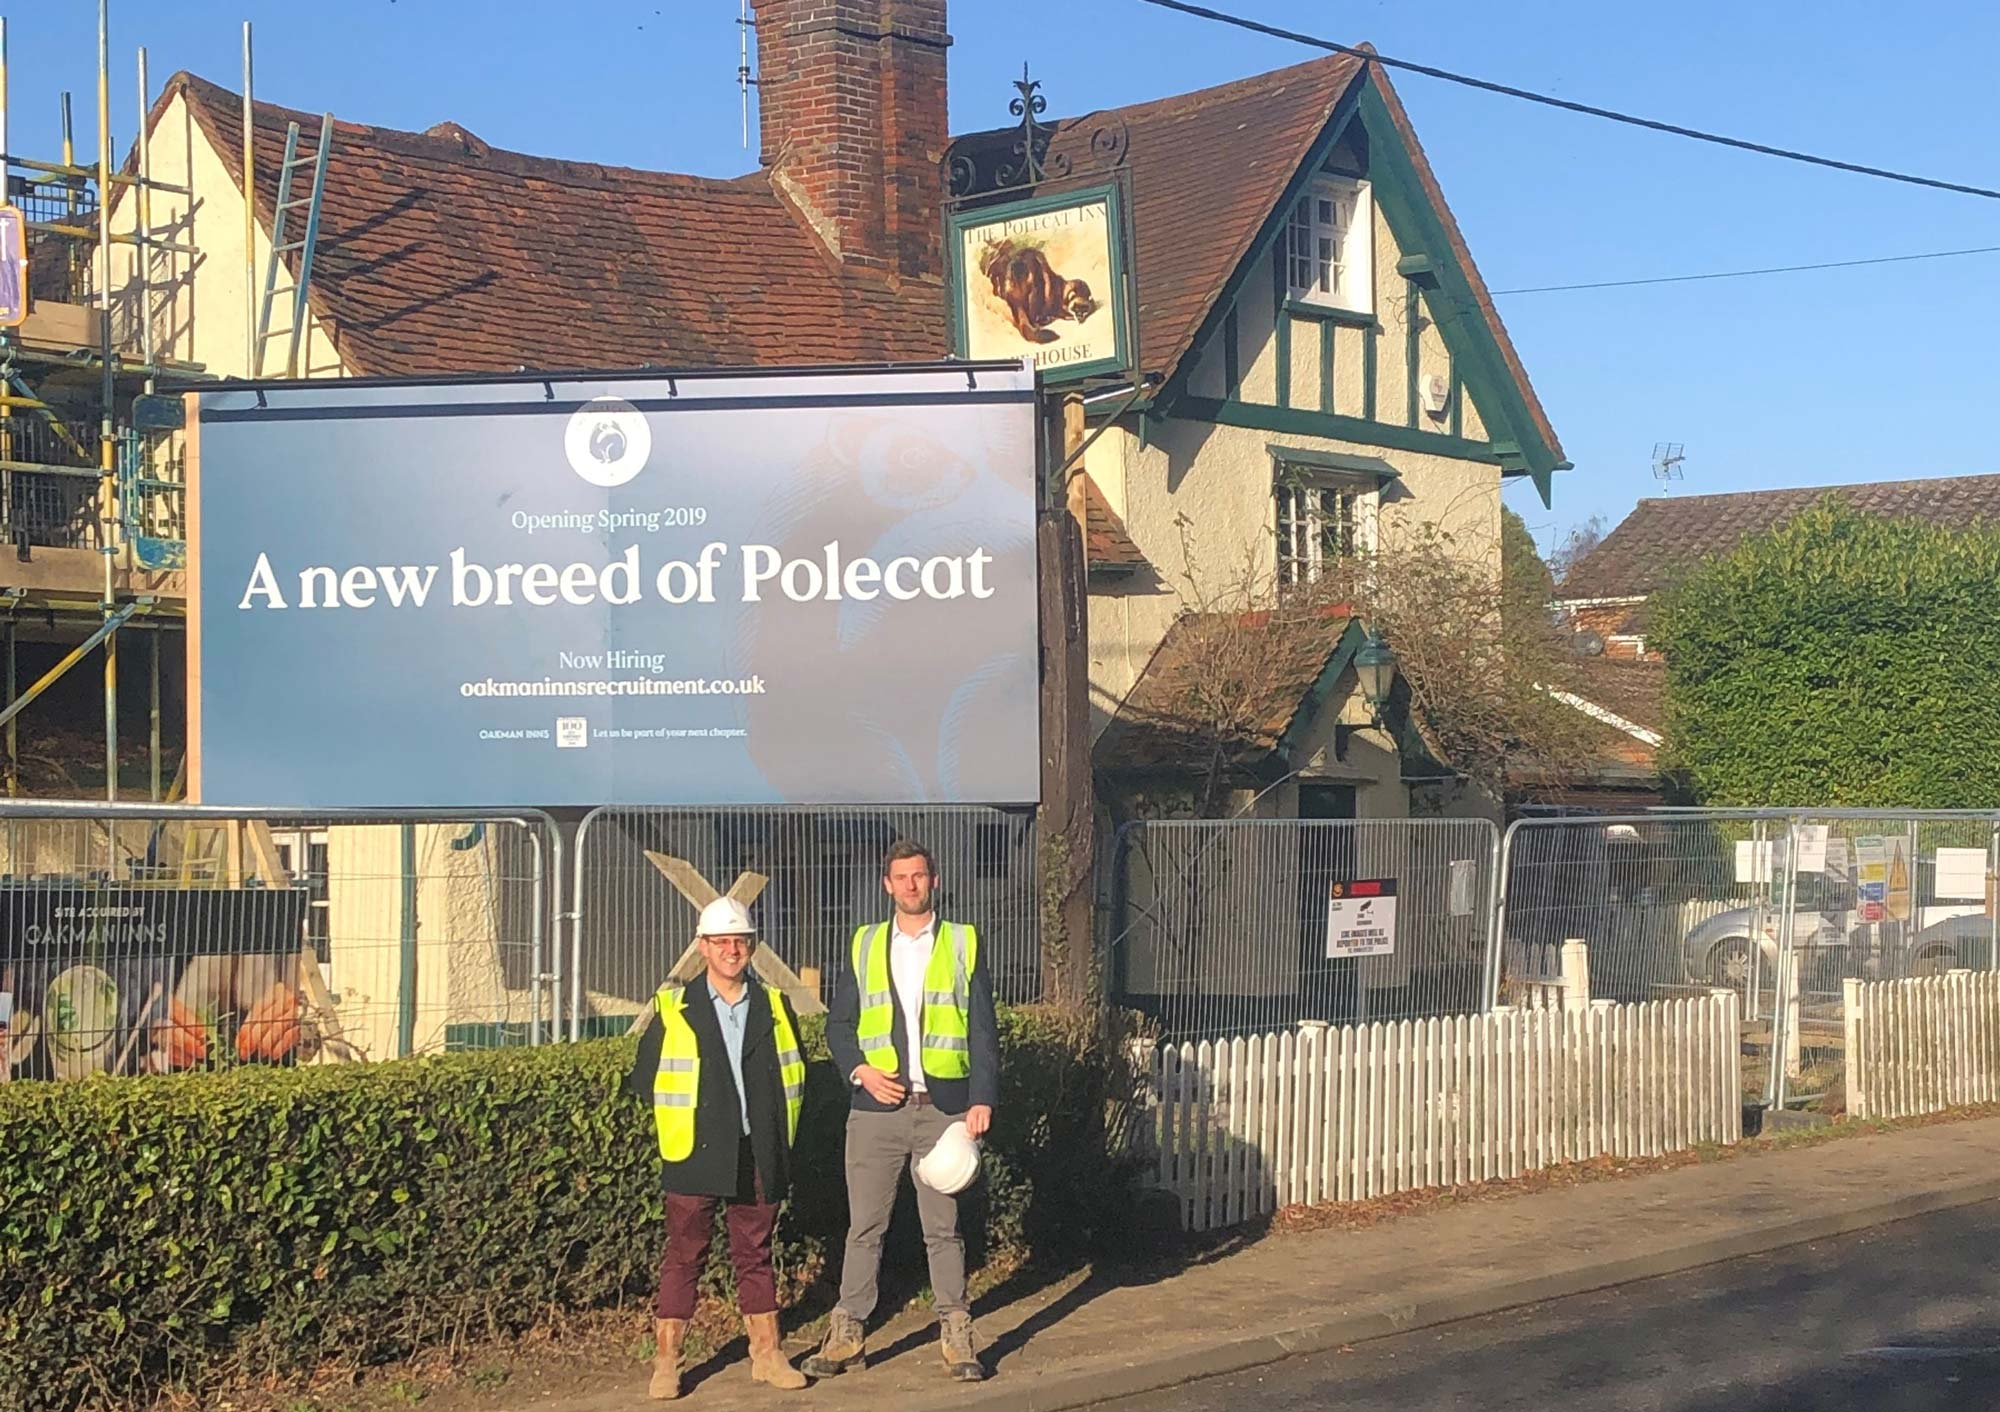 George-Tompkins-and-Damien-Hughes-outside-The-Polecat-Prestwood.jpg